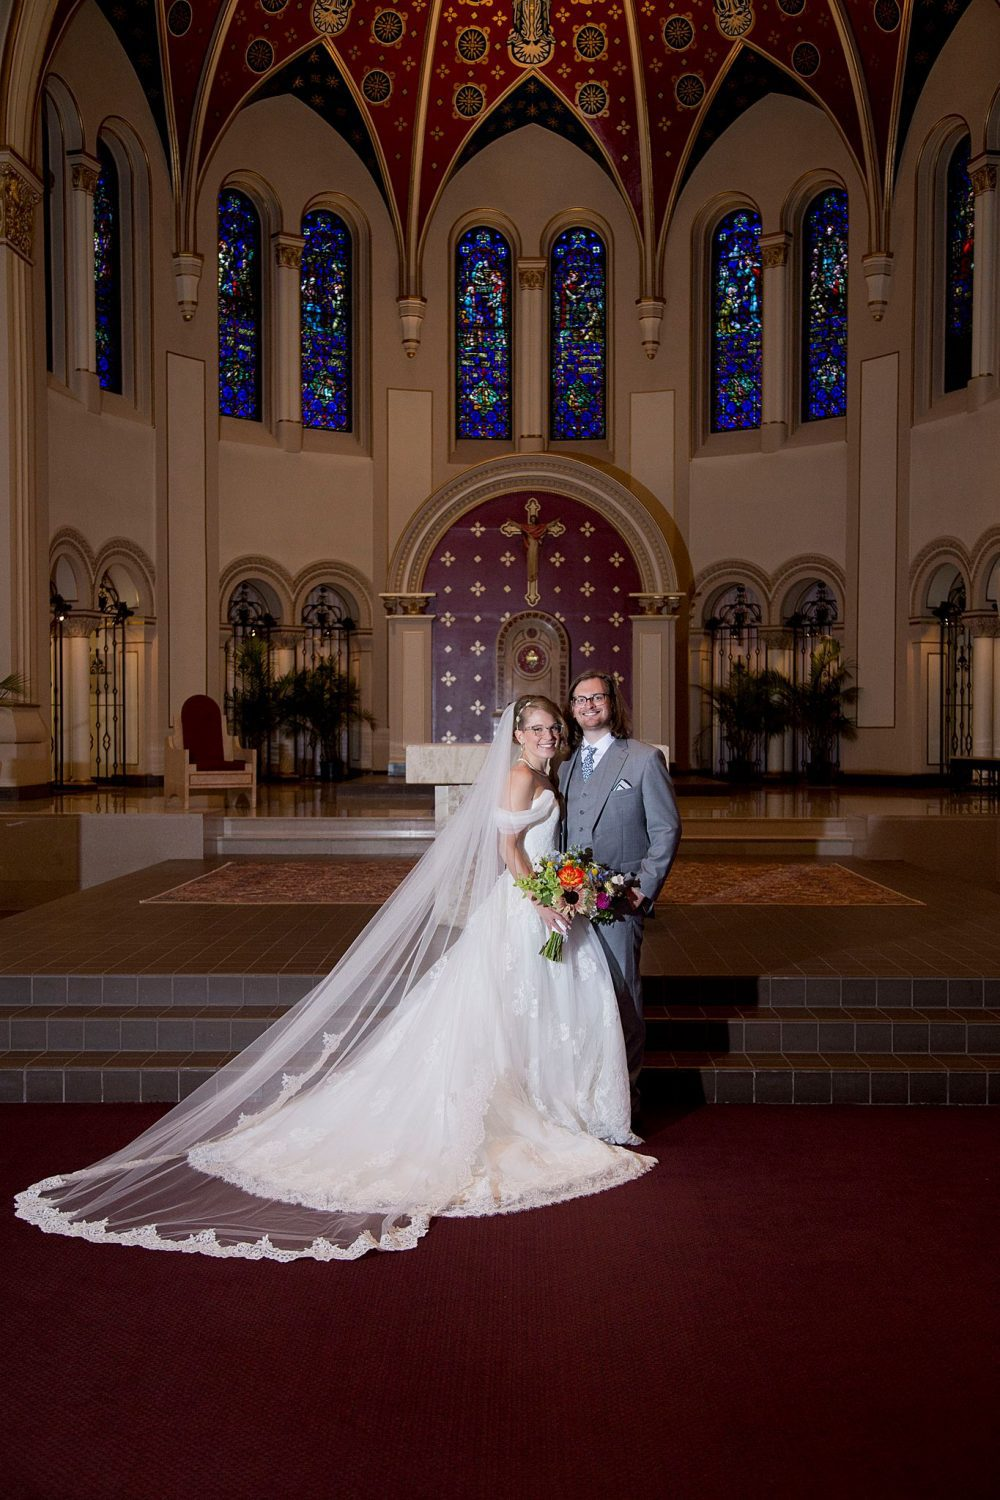 A bride and groom stand in dramatic lighting at the altar of St Ambrose Cathedral in Des Moines.